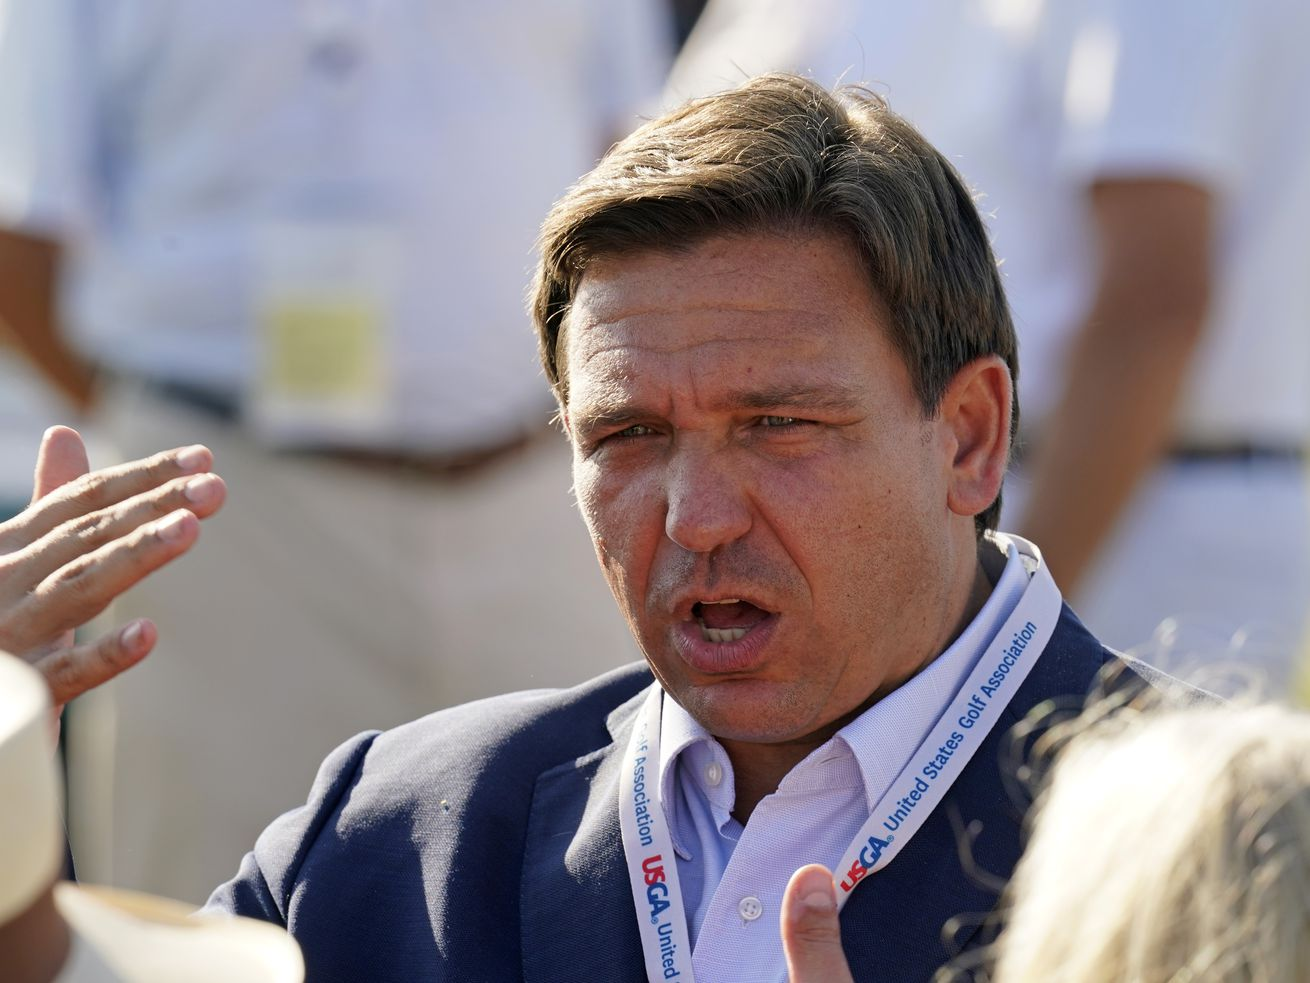 Florida Gov. Ron DeSantis signed into law a ban on transgender athletes participating in women's high school and college sports in the state.